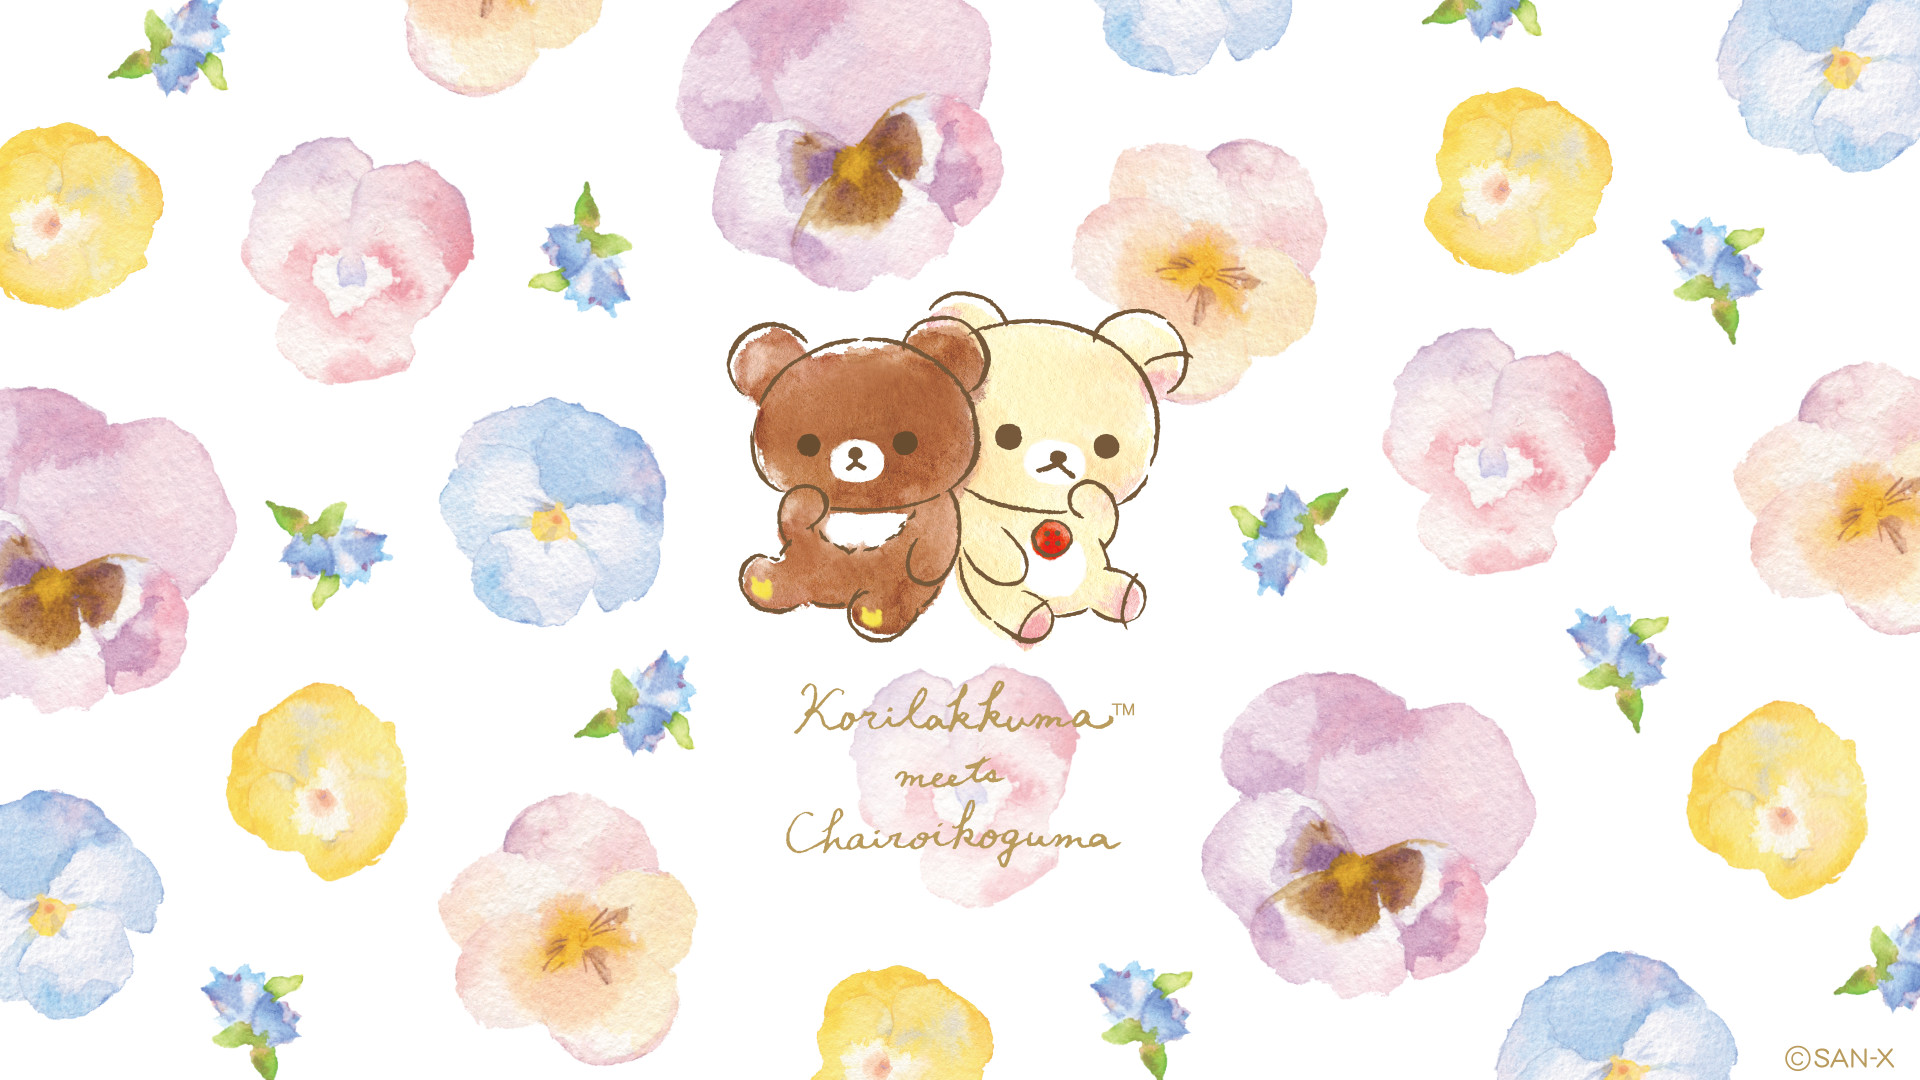 1920x1080 99_1080_1920.png (1920×1080) | Rilakkuma*Japan*Character | Pinterest |  Rilakkuma, Kawaii and Hello kitty